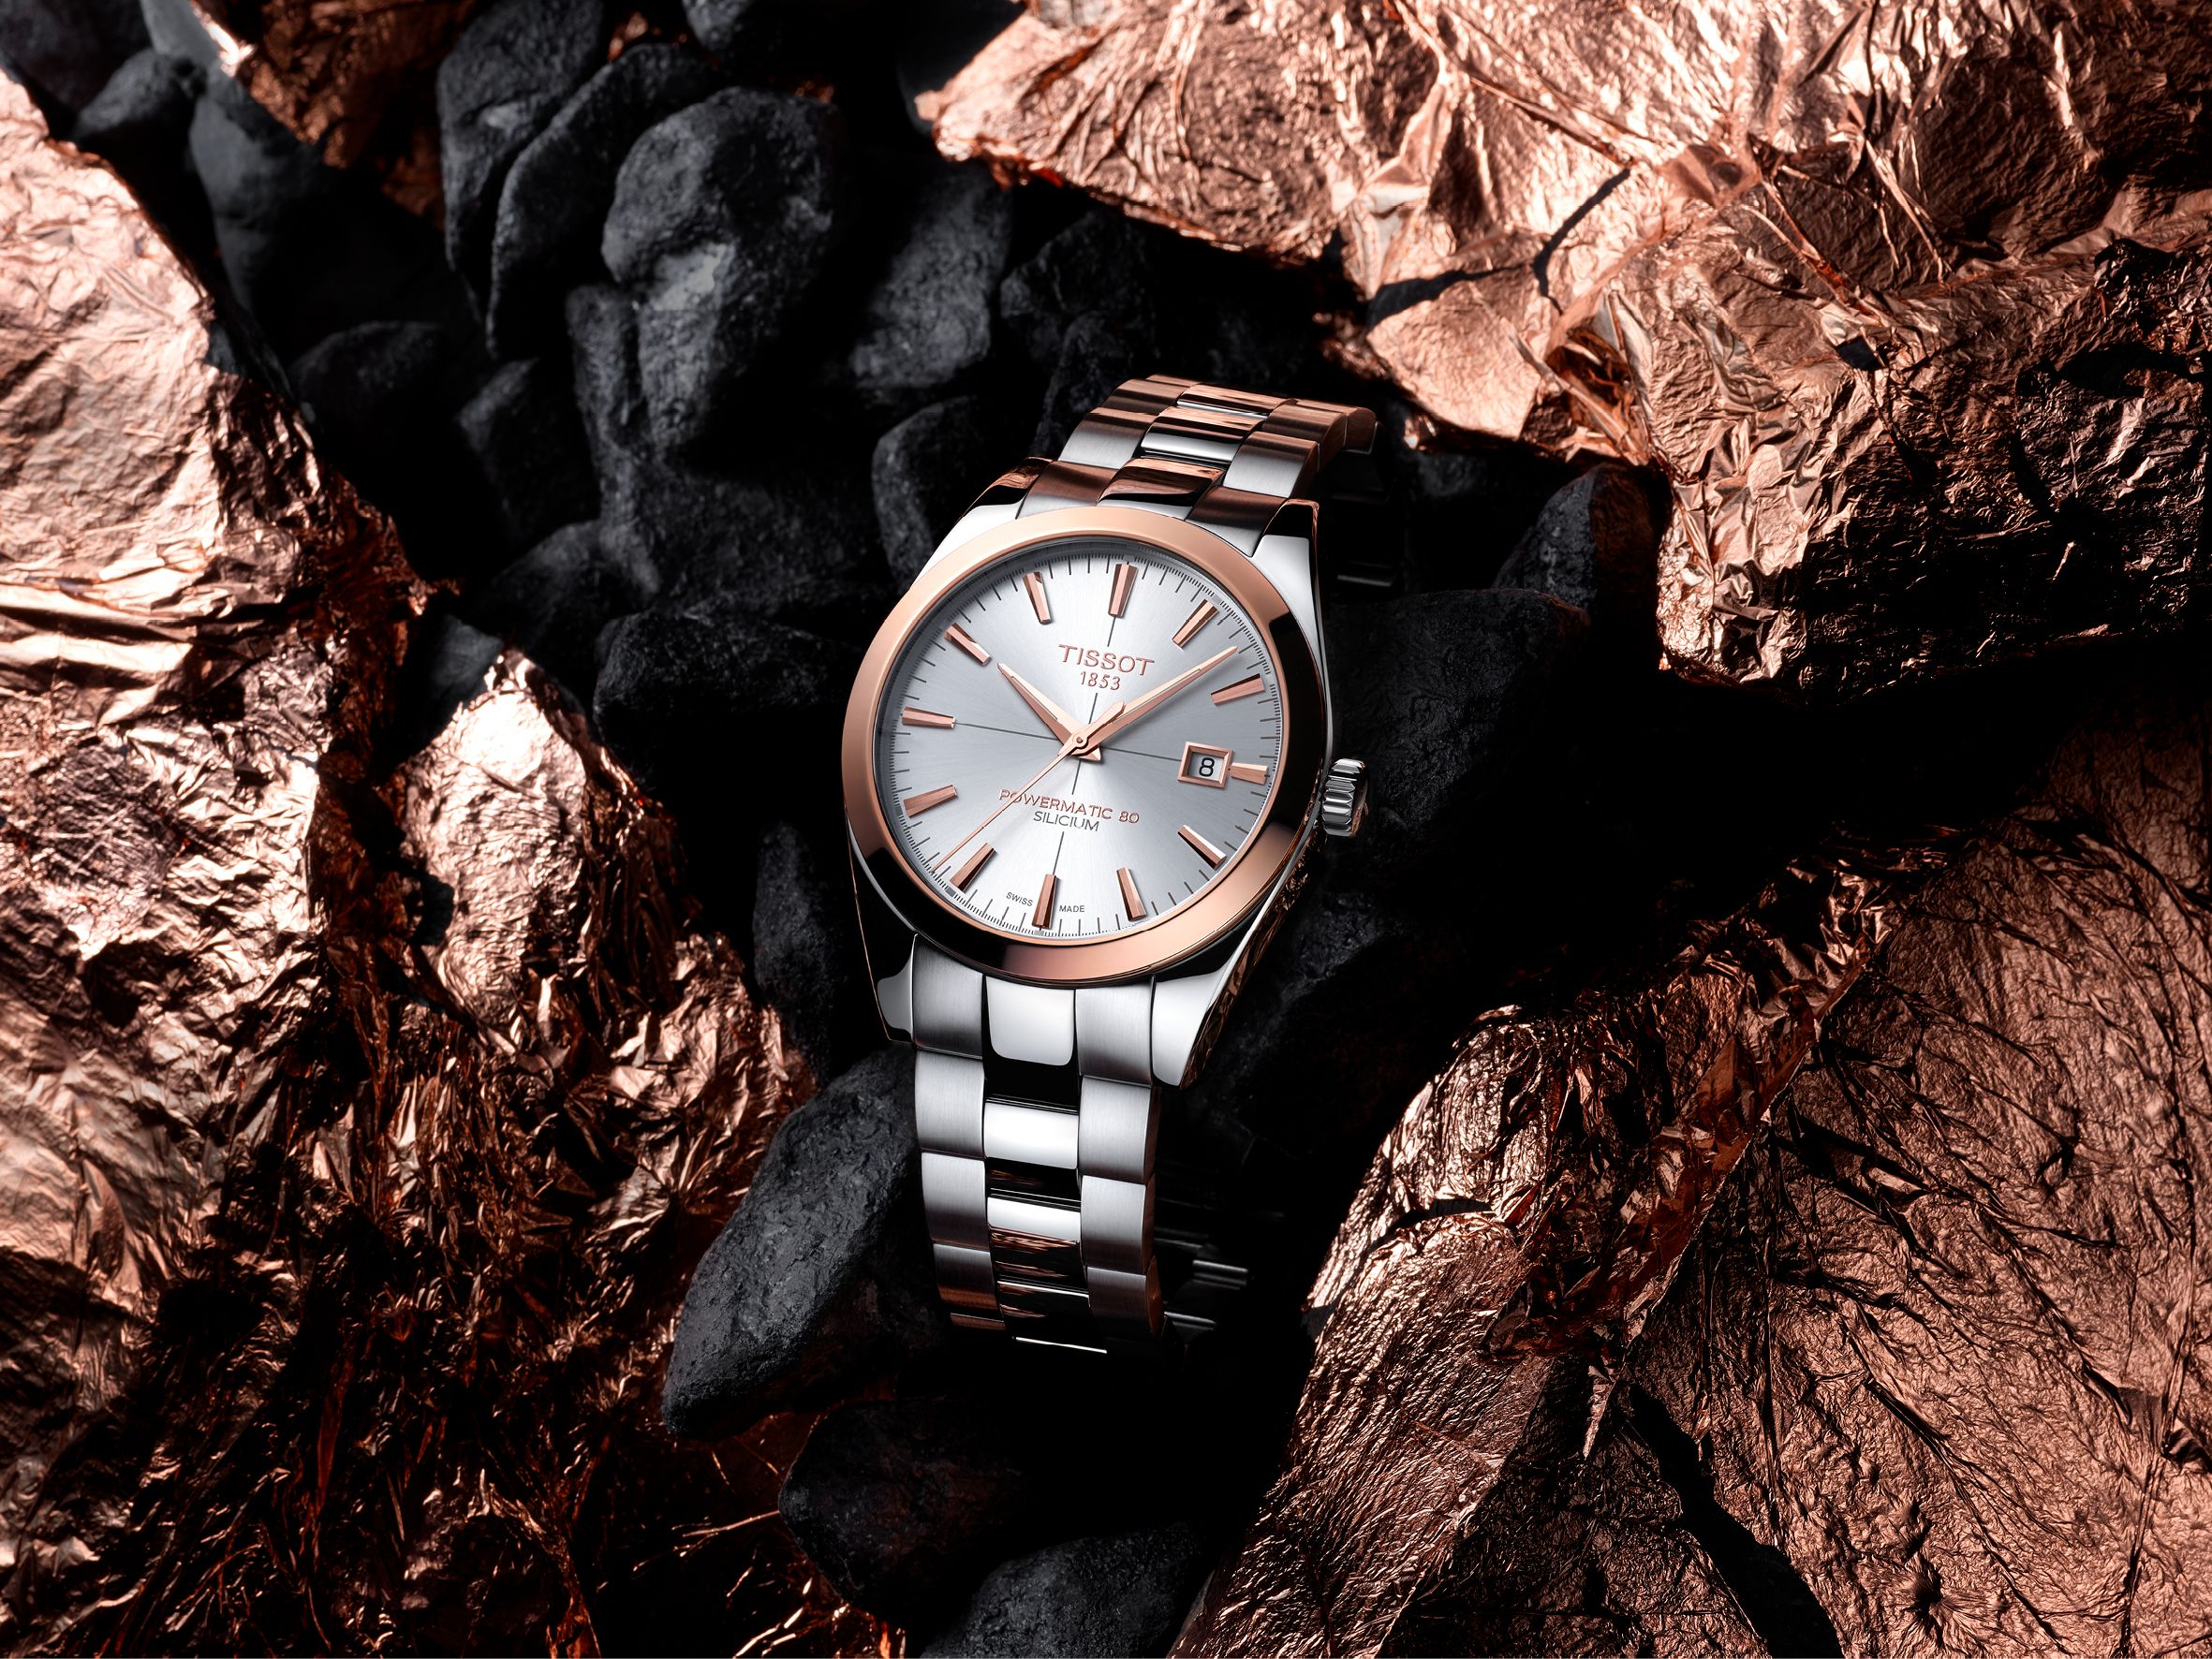 nuova collezione c8cdc 8ed3c Exclusive: Tissot Releases New Gentleman Automatic Collection